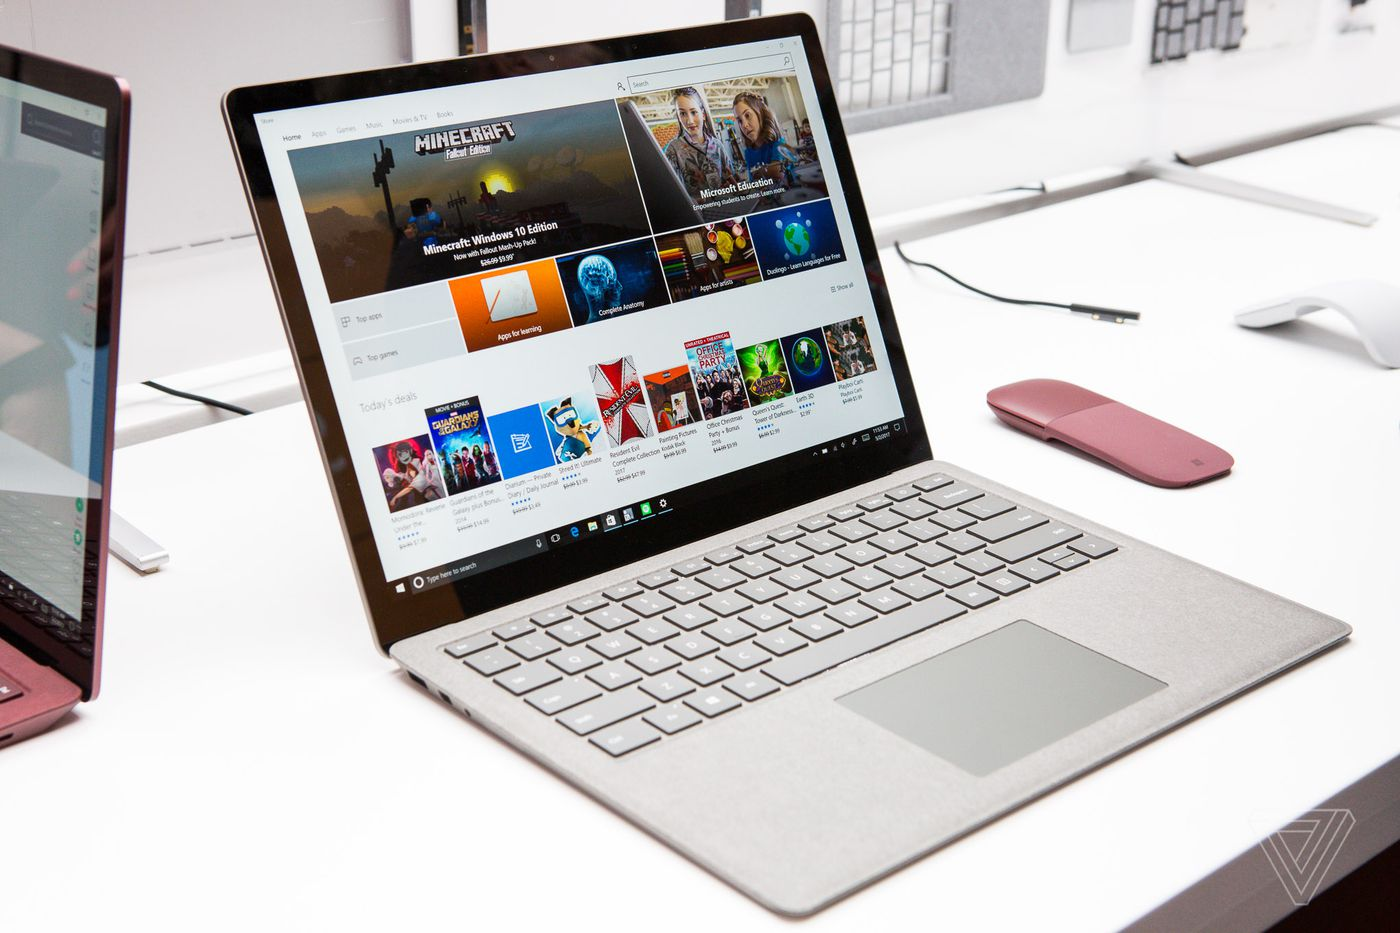 Widescreen laptops are dumb - The Verge